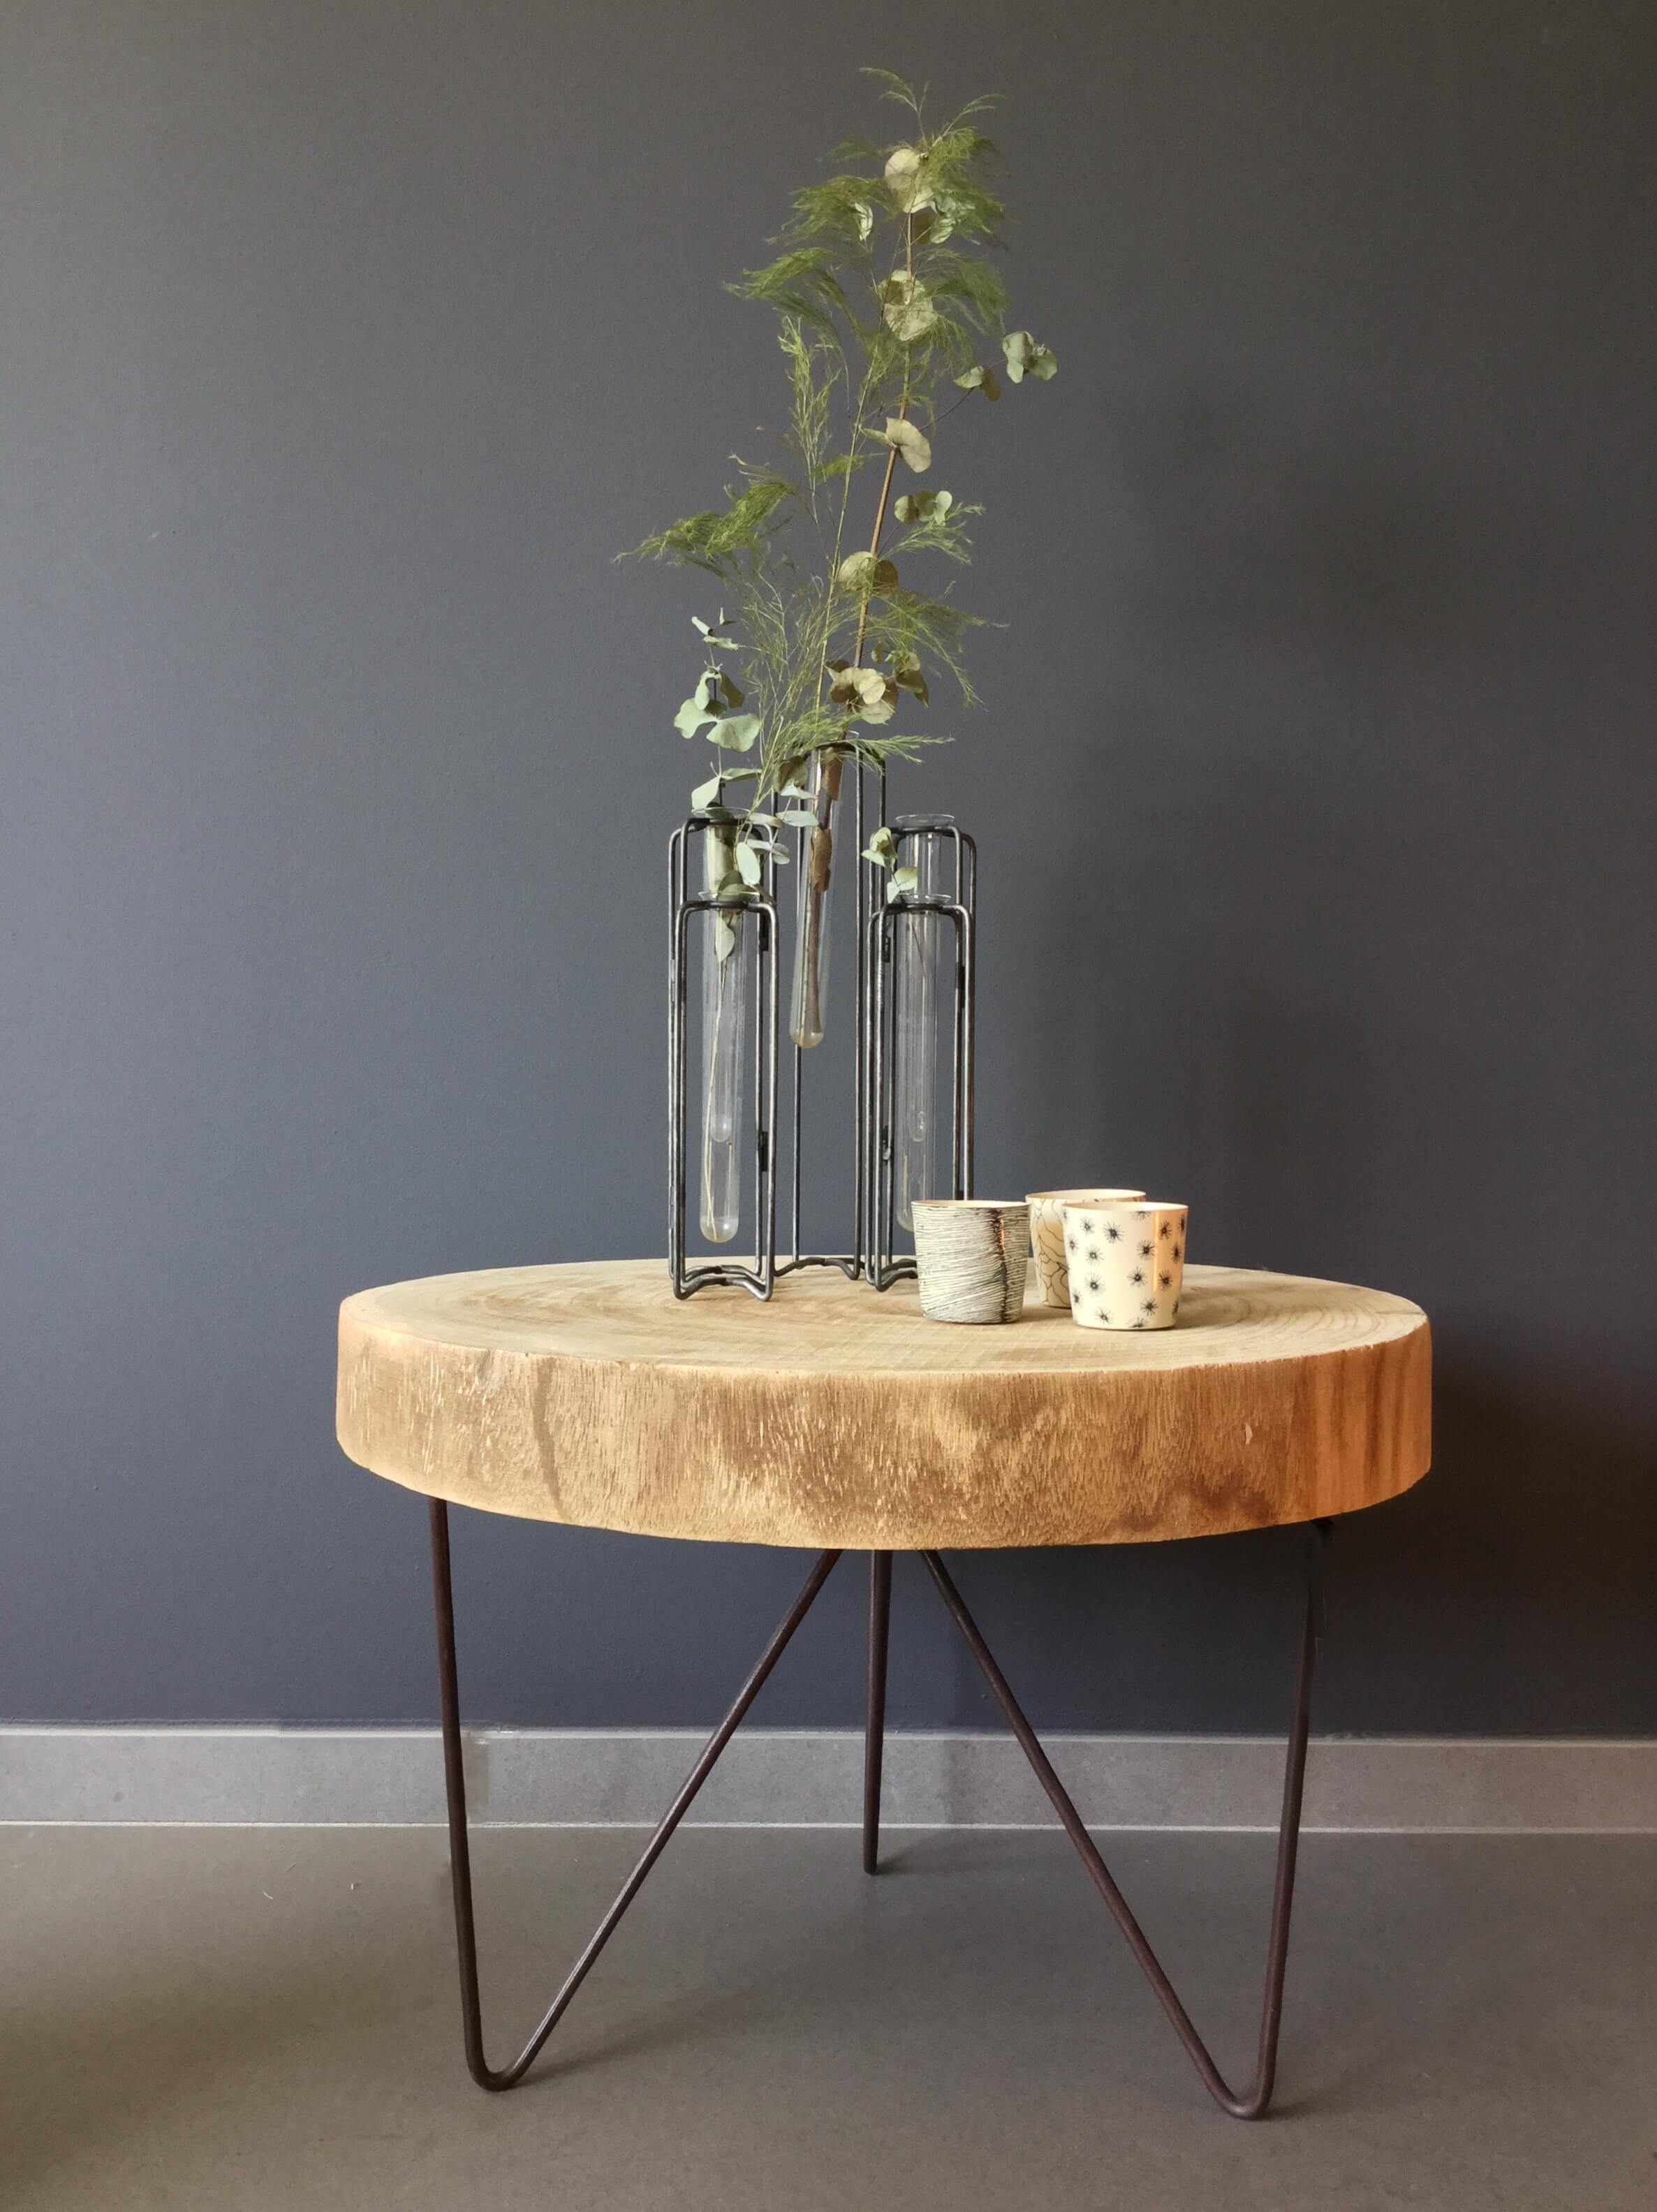 Idée Table De Chevet Originale Table De Nuit Rondin De Bois Trendy Finest With Table De